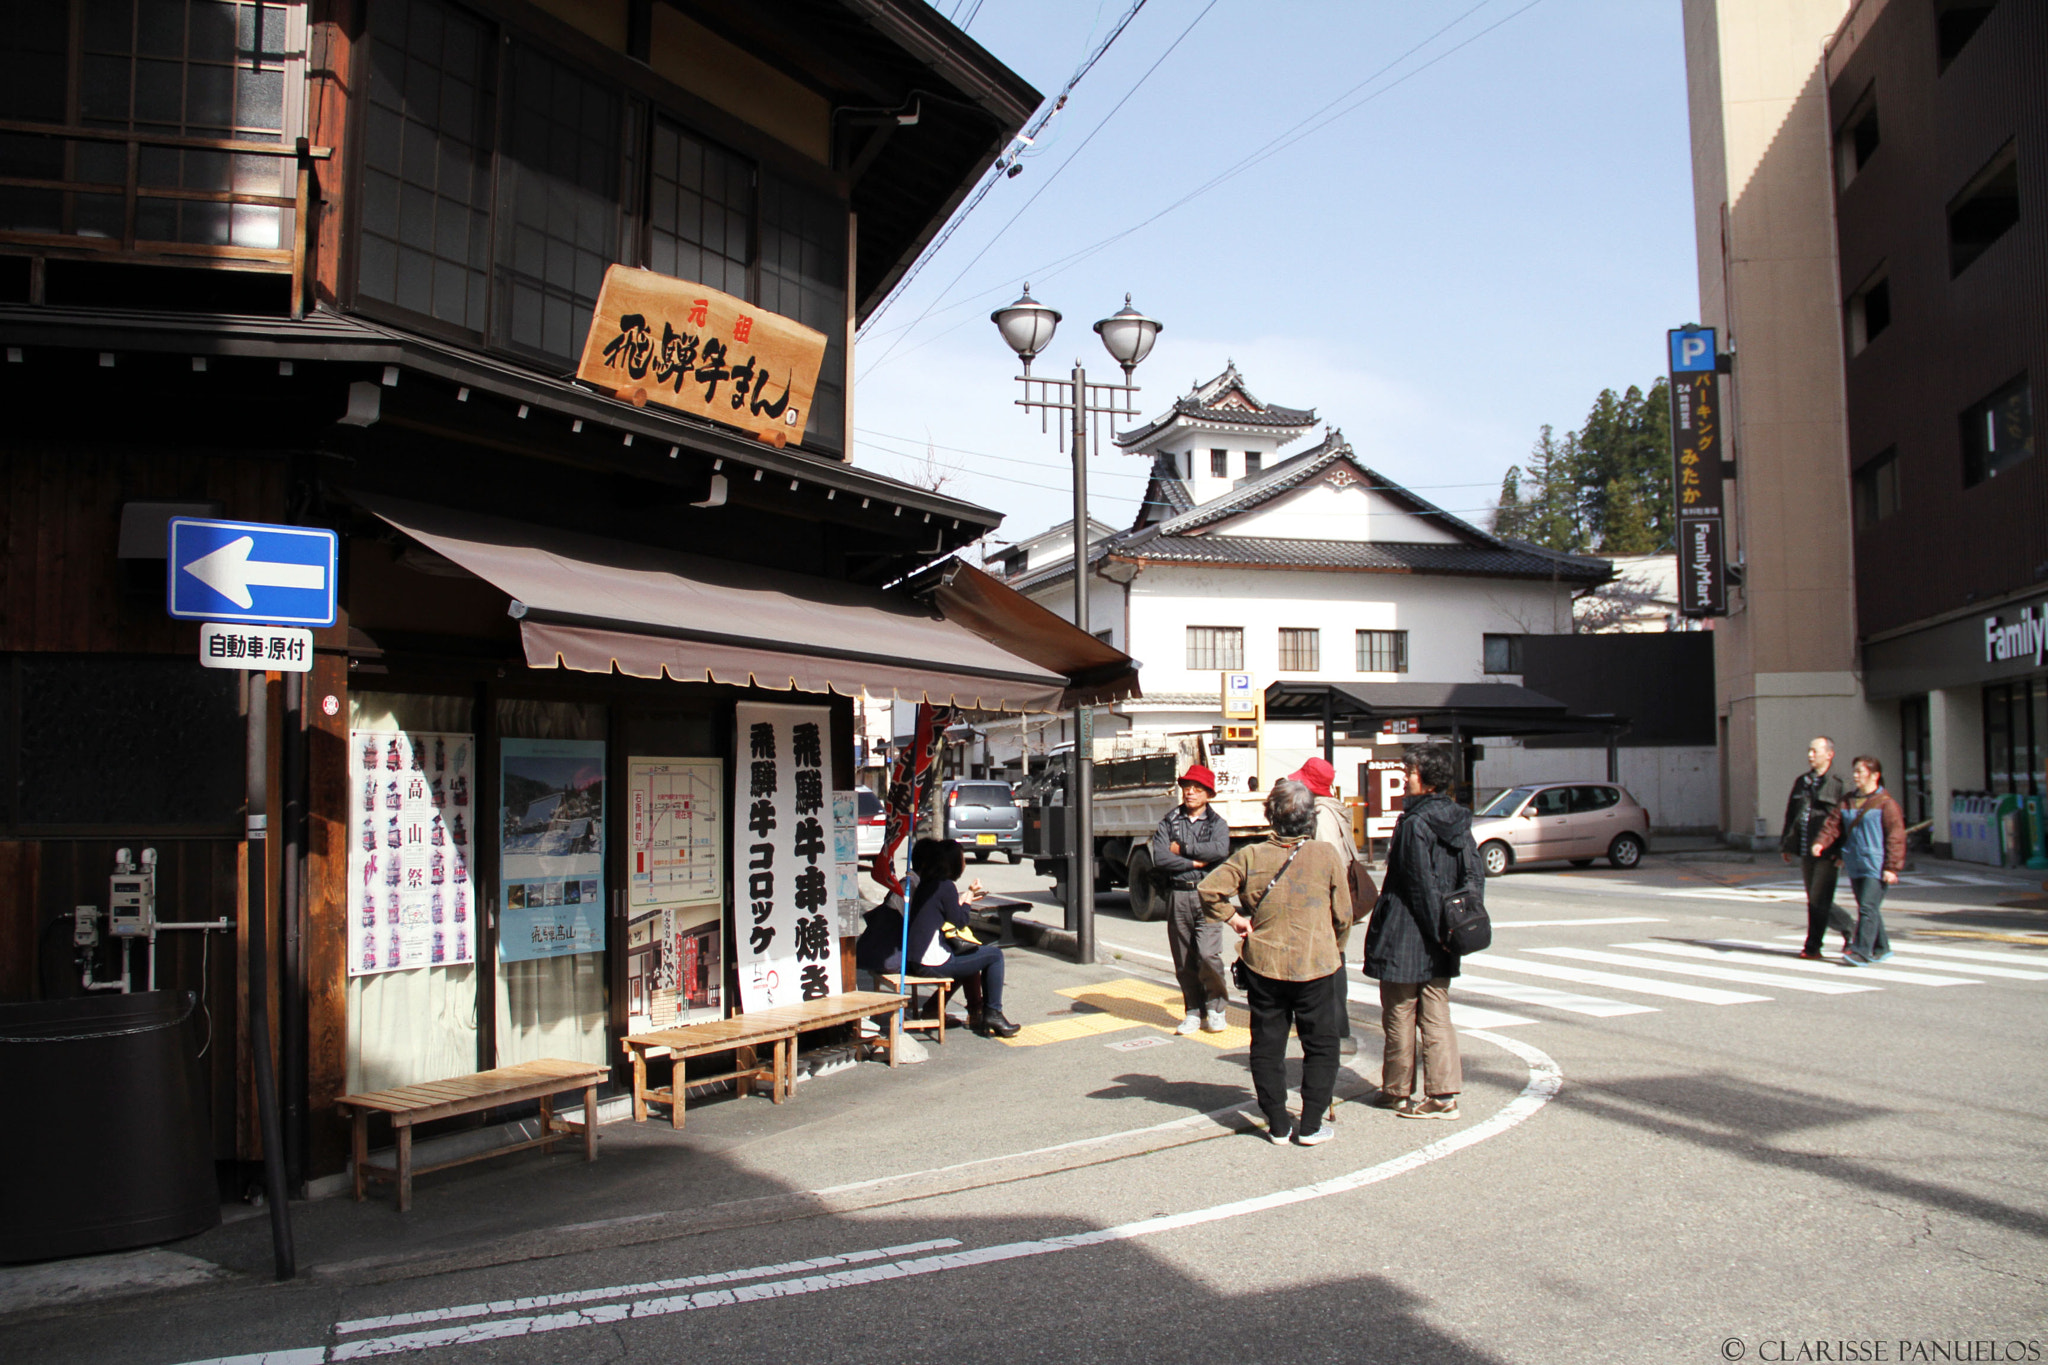 e37597567a9ee09d9fa27d477c32b7a9 - Japan Travel Blog April 2015: Takayama Old Town